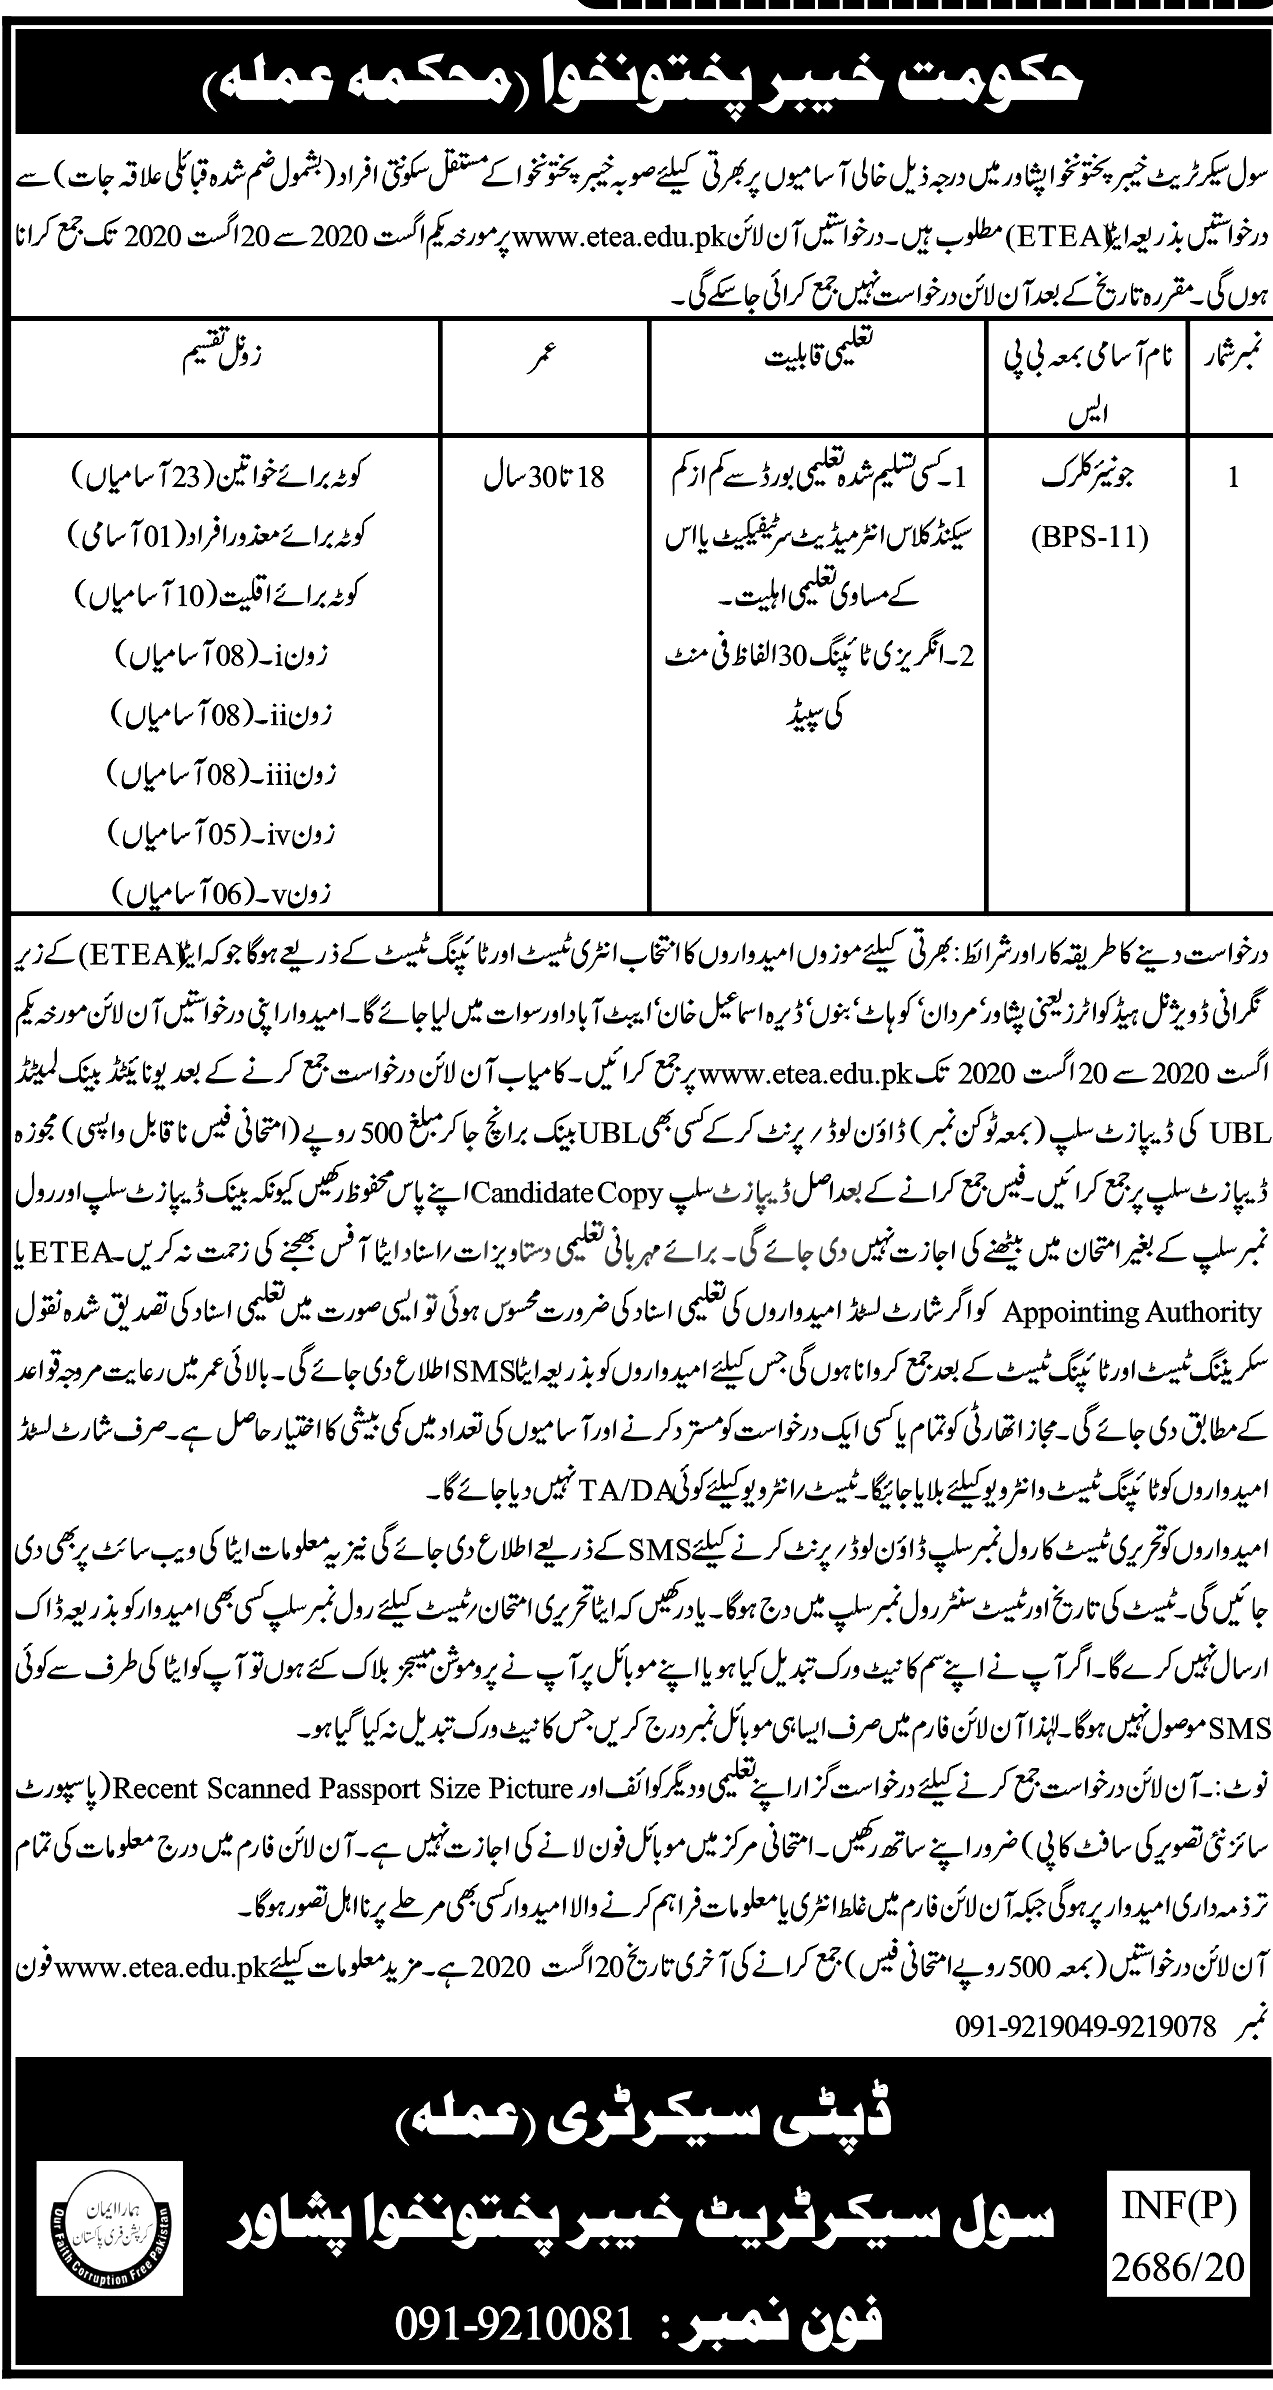 Civil Secretariat of KPK Jobs 2020 ETEA Apply Online Roll No Slip